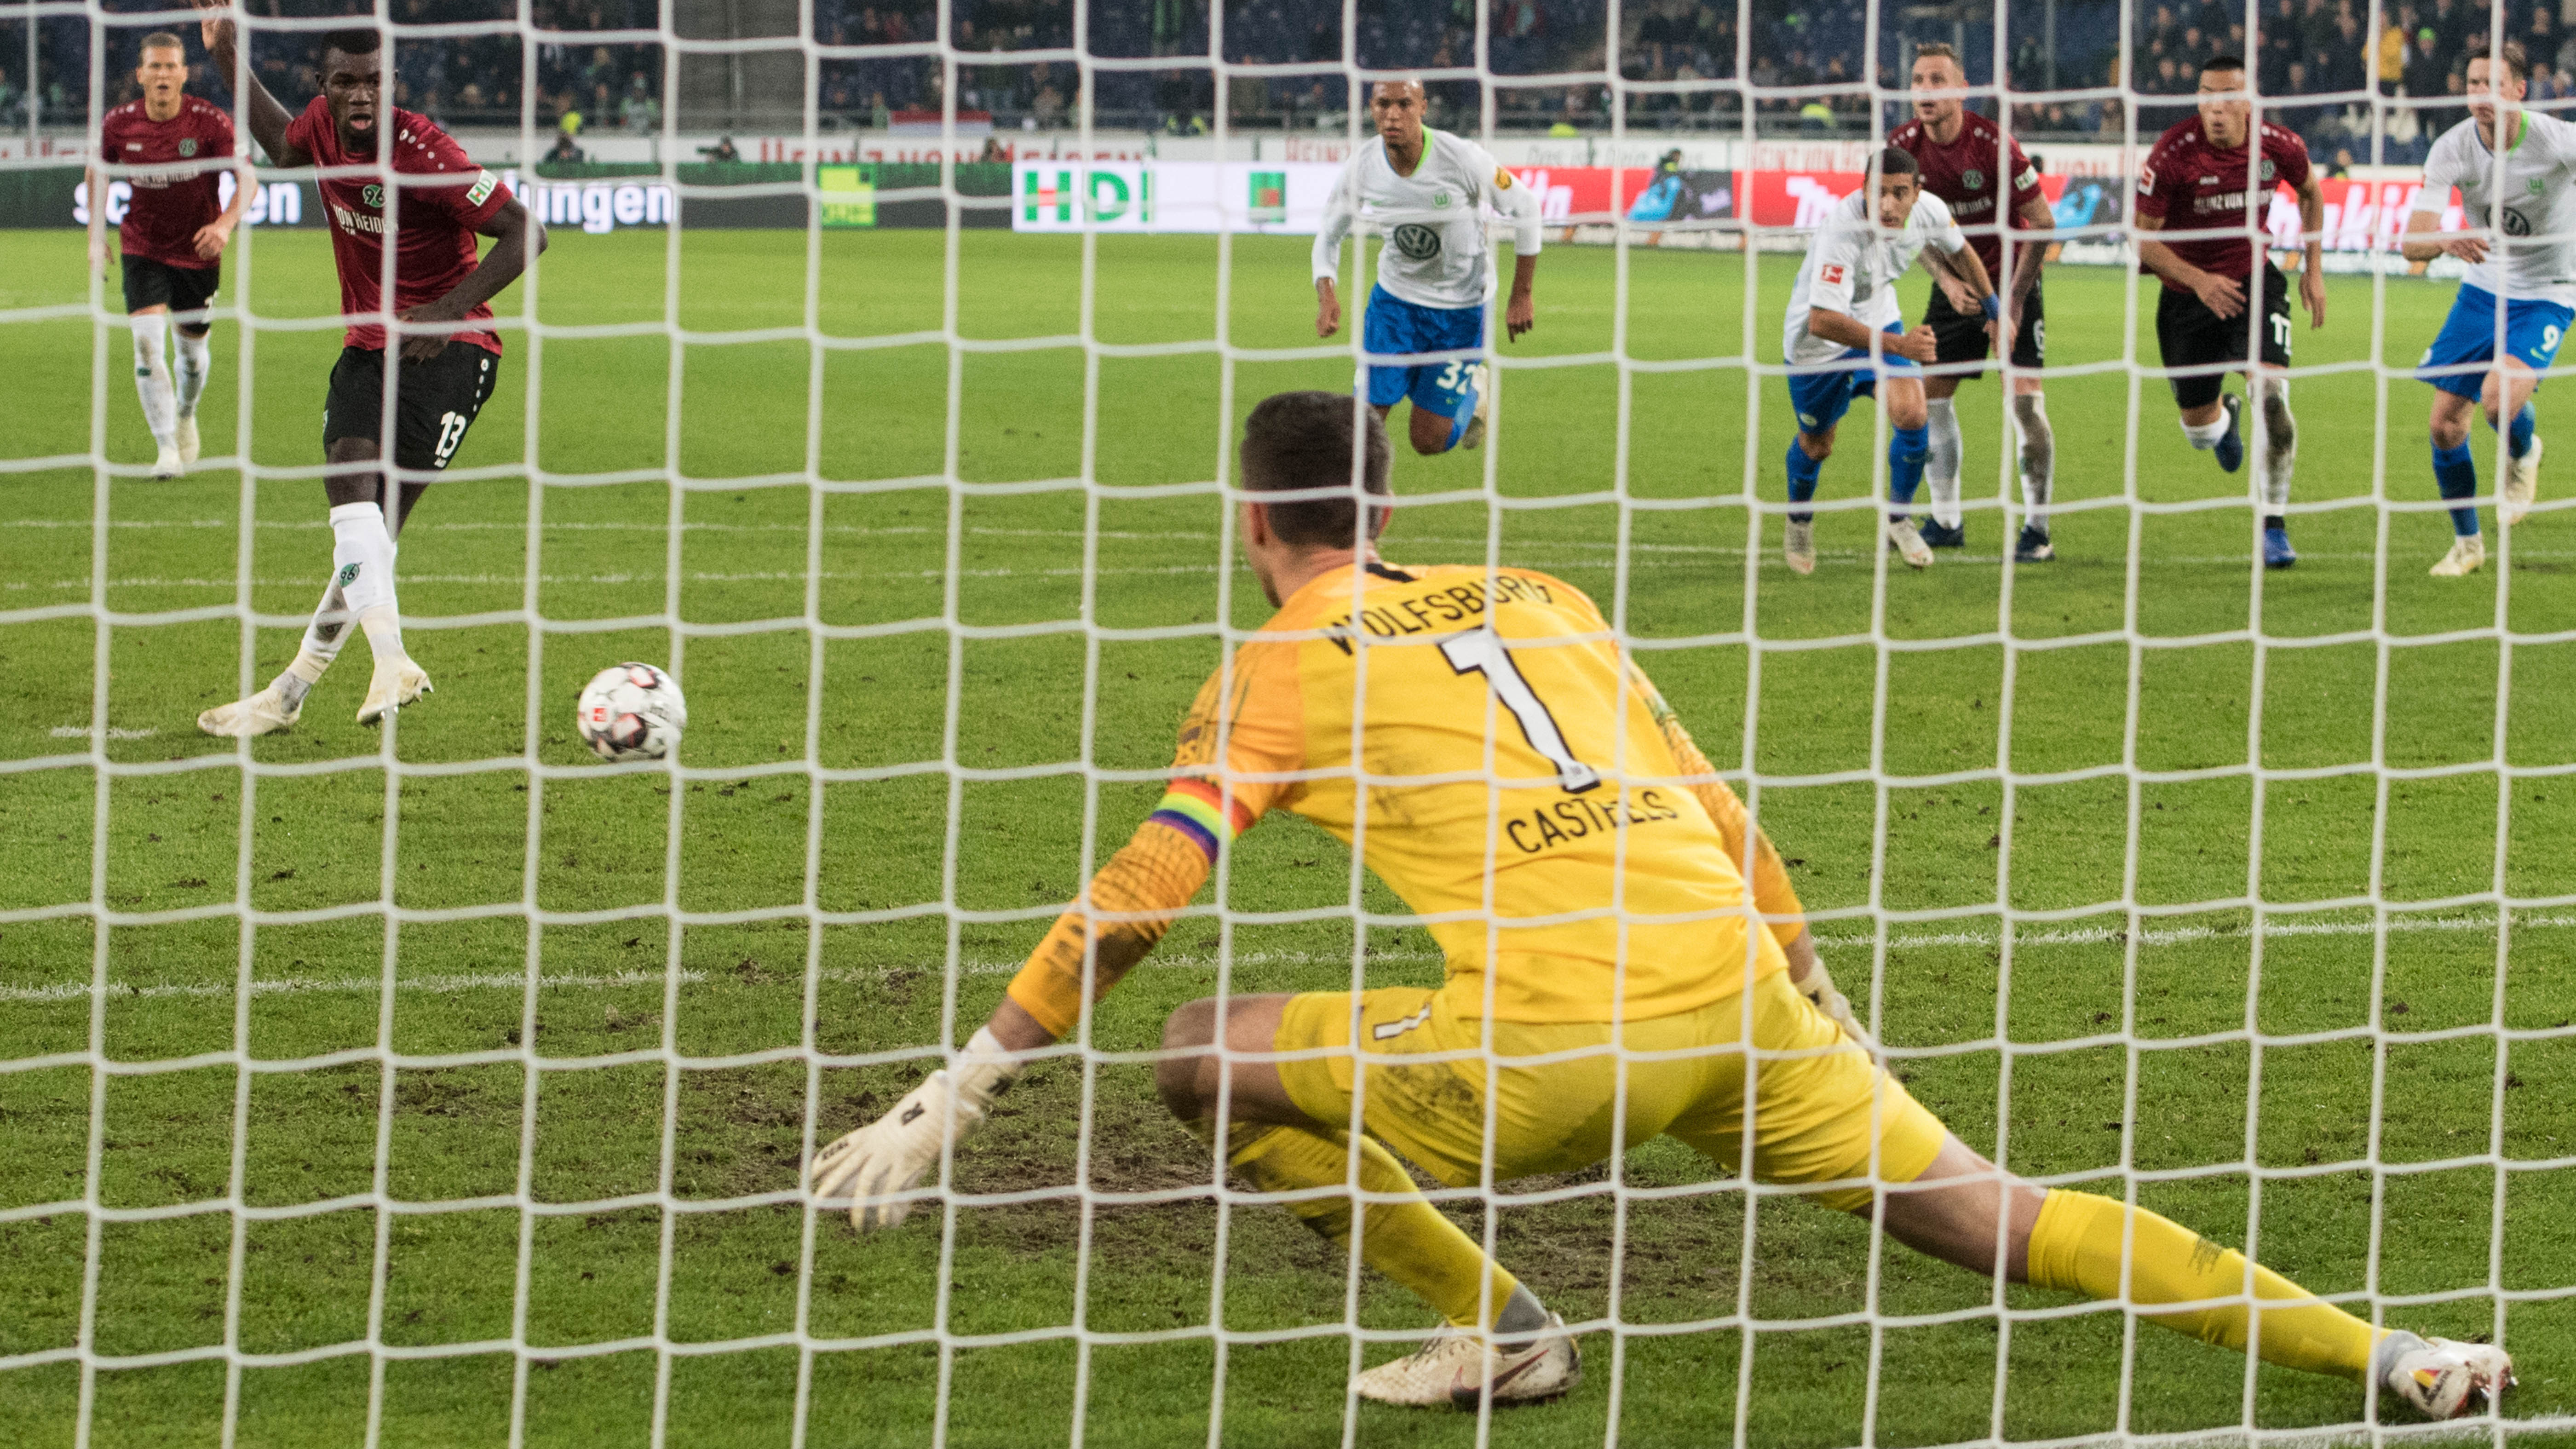 Changes To Football Rules Would Benefit Goalkeepers At Penalties